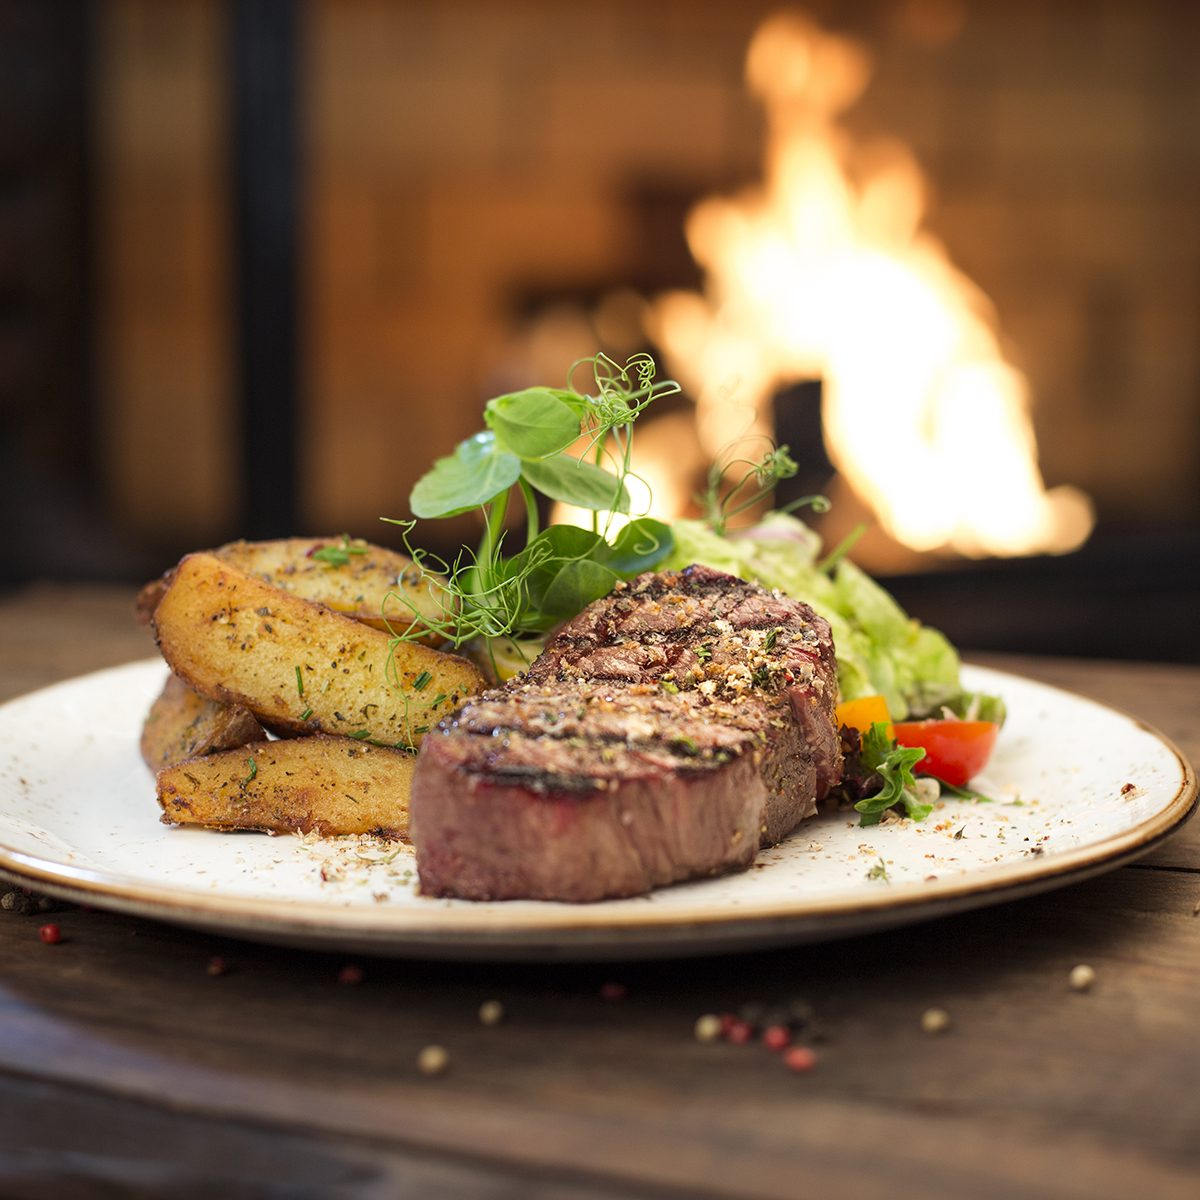 Food - Beef dinner - Delicious grilled stake and potatoes served on a wooden table